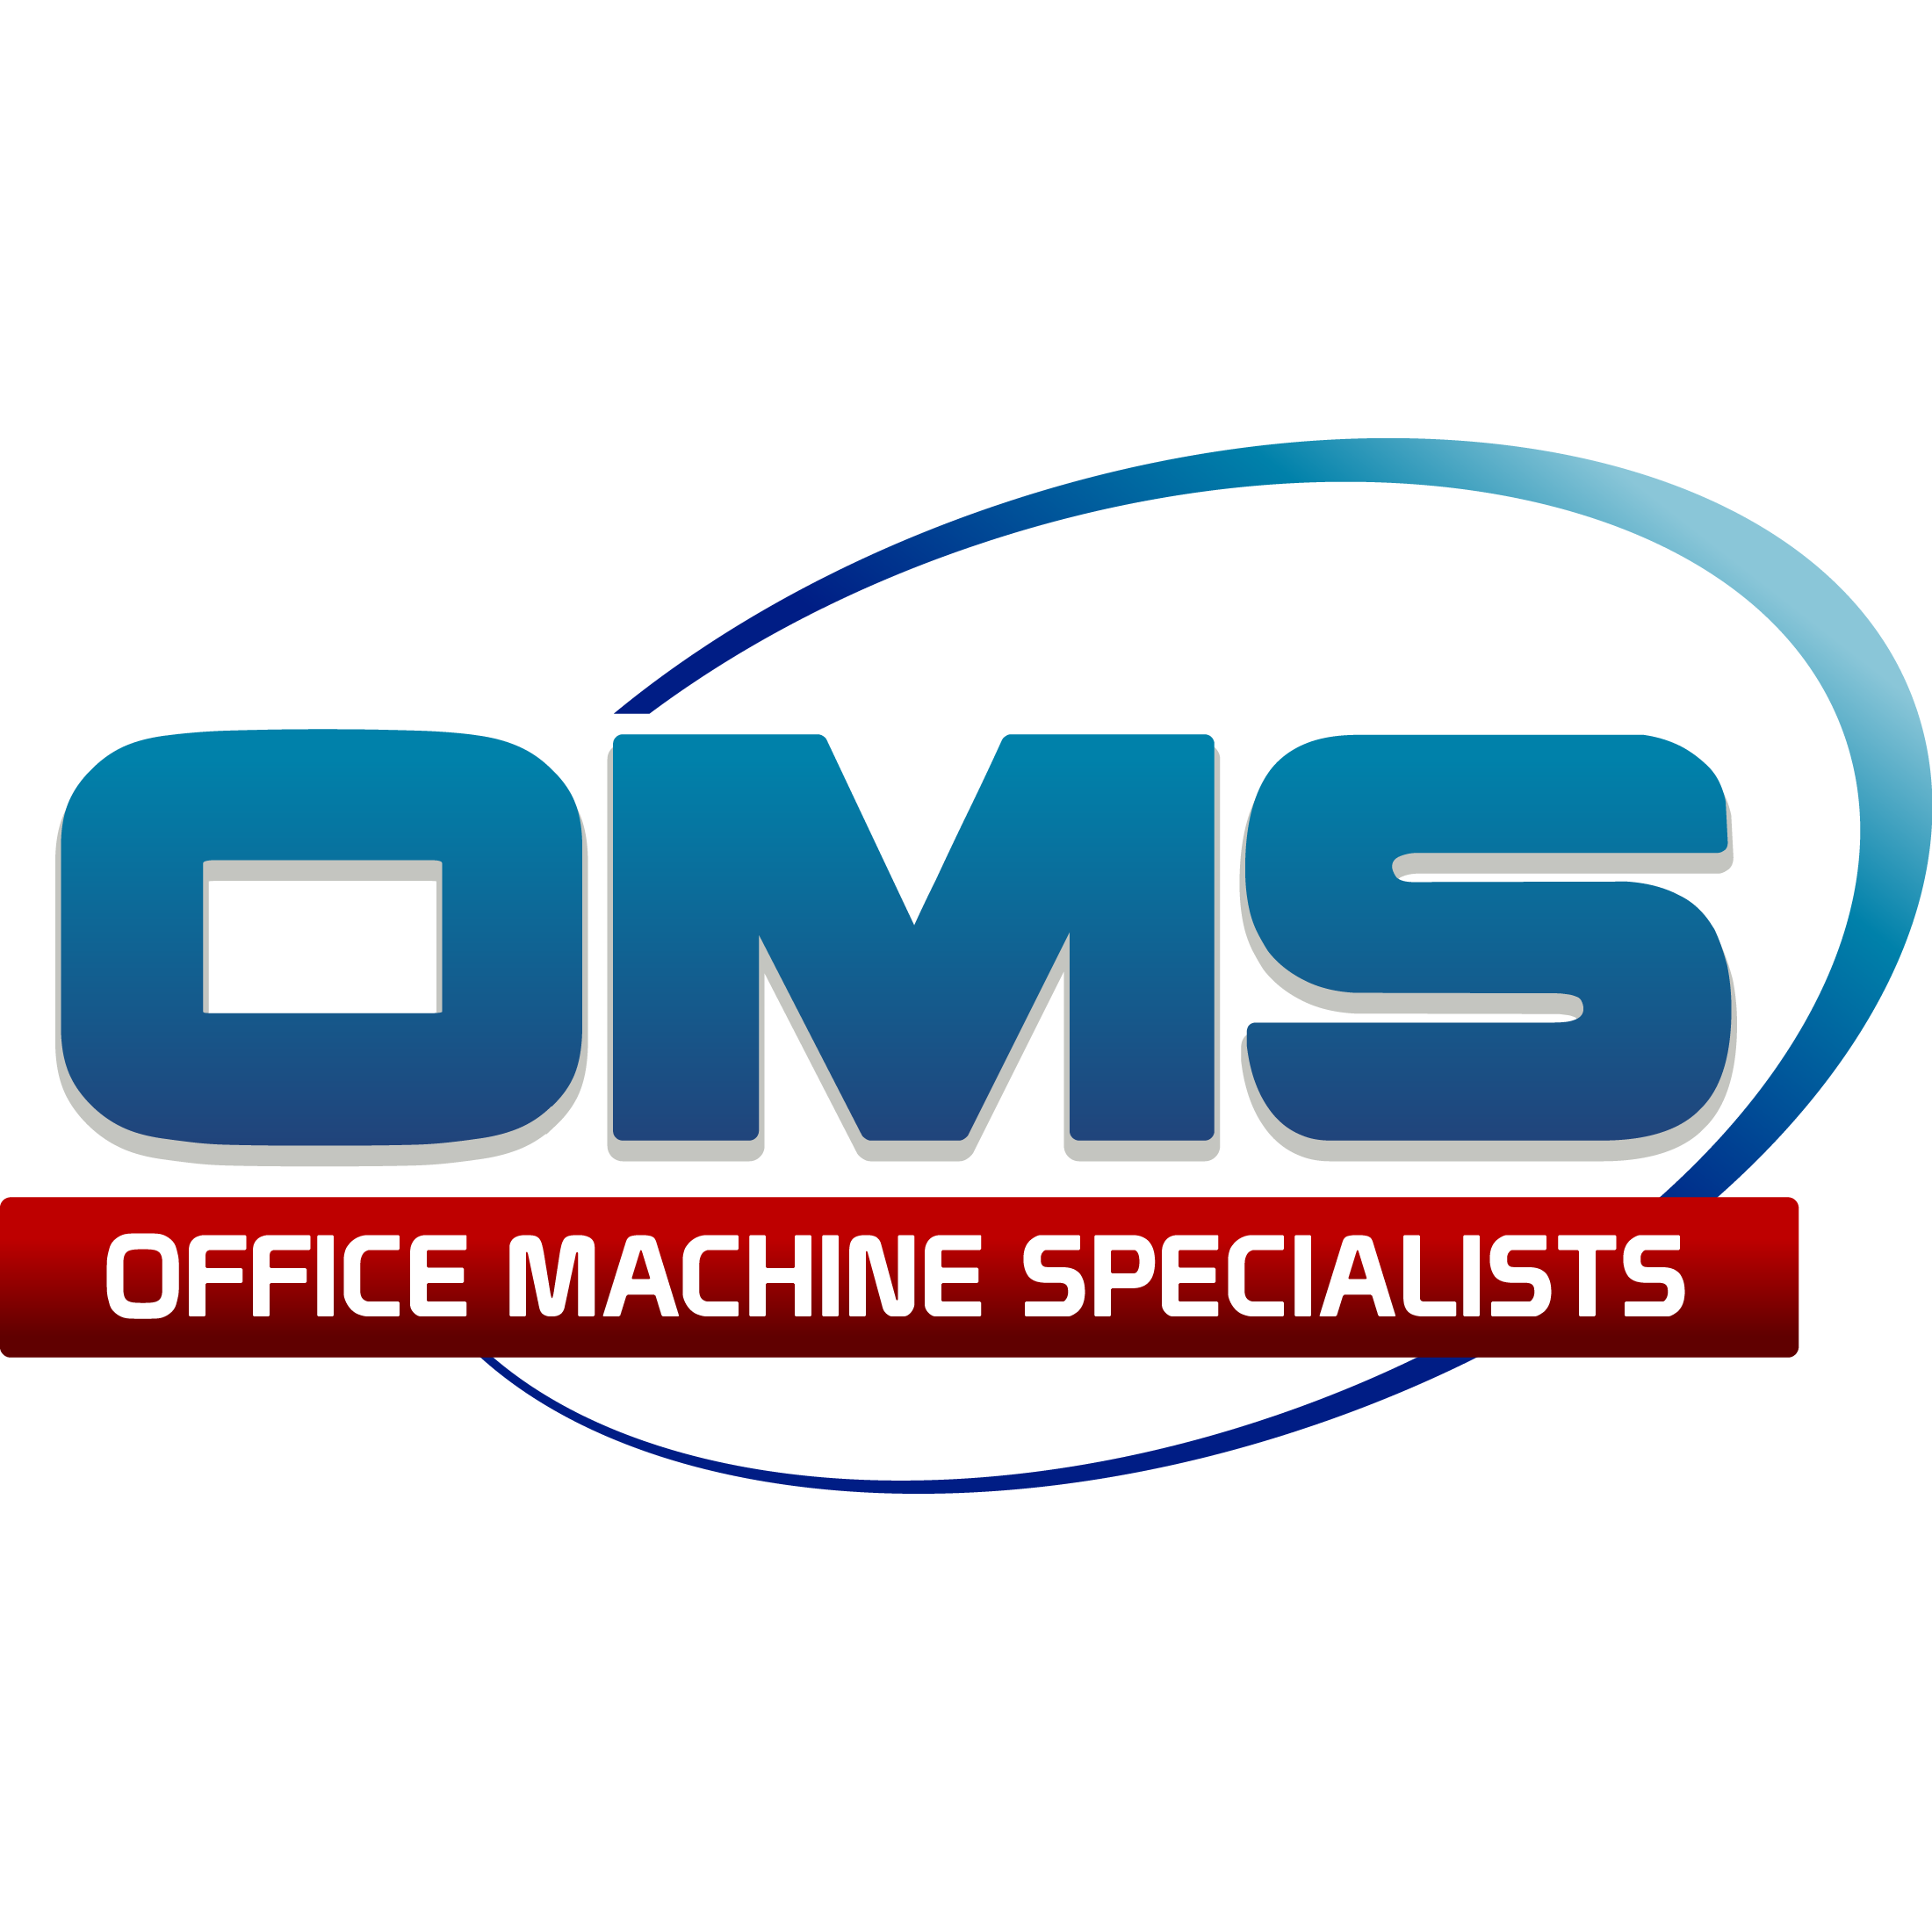 Office Machine Specialists